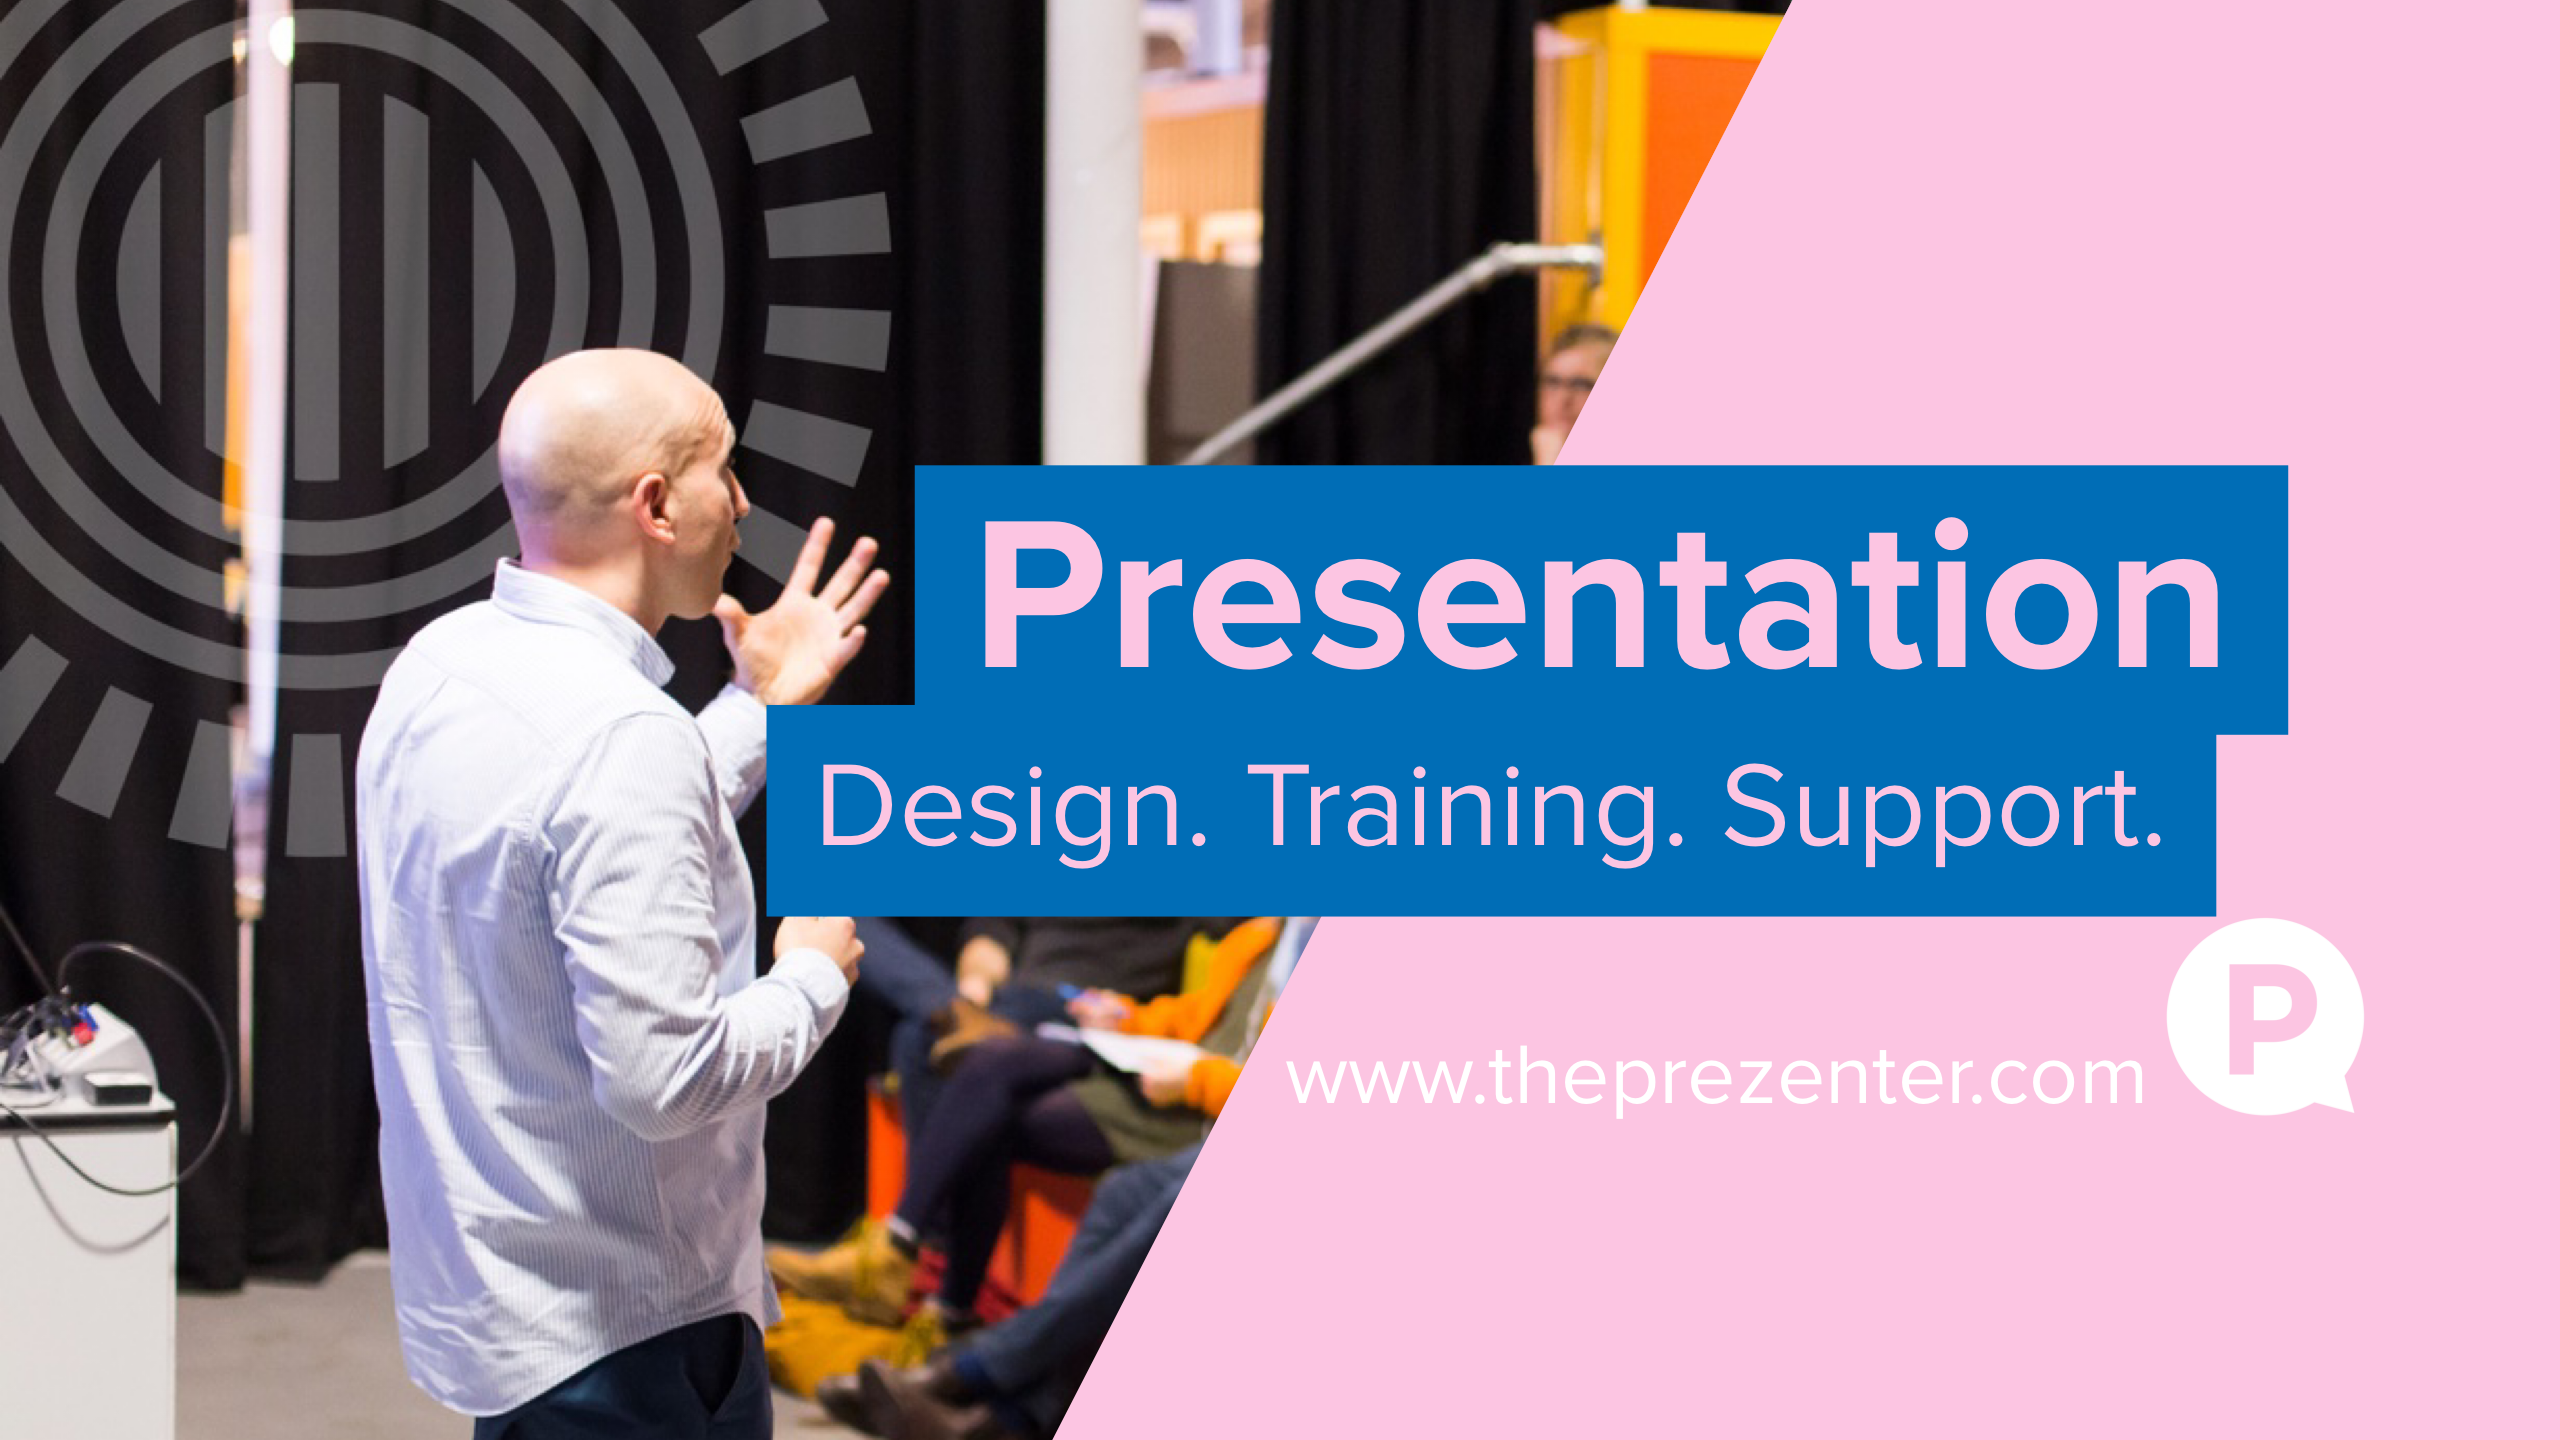 Presentation training design and support